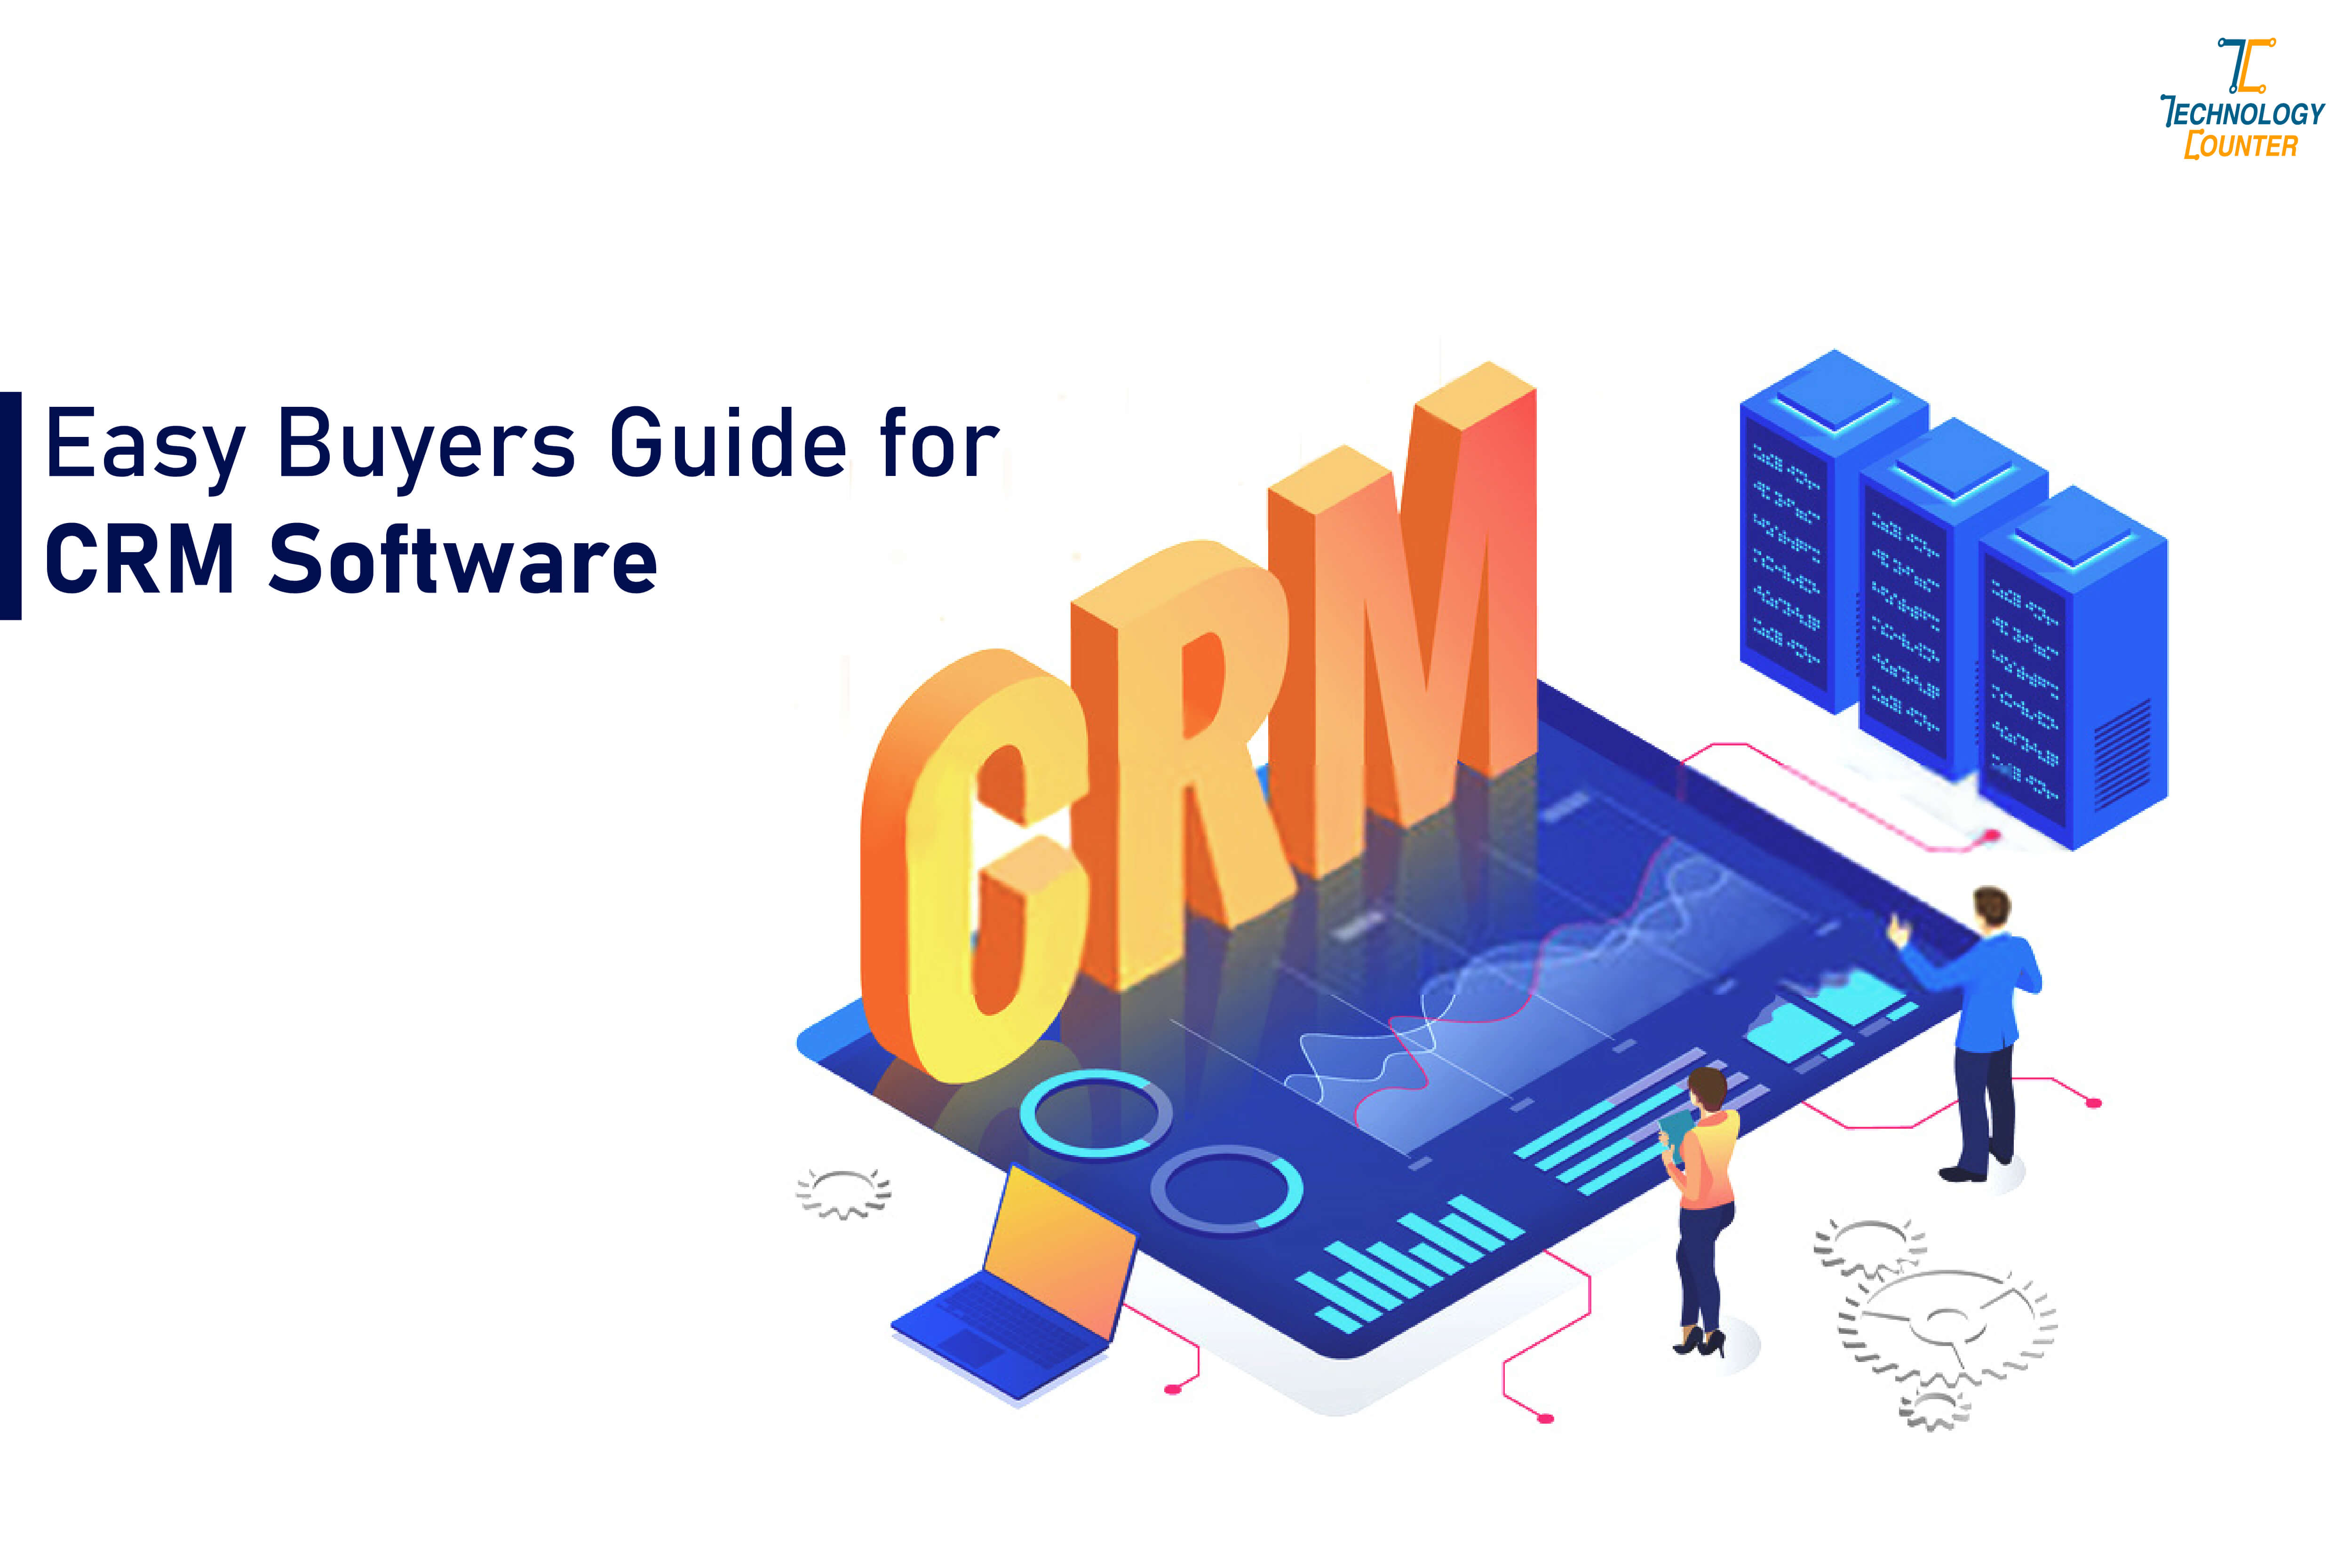 Easy Buyers Guide for CRM Software